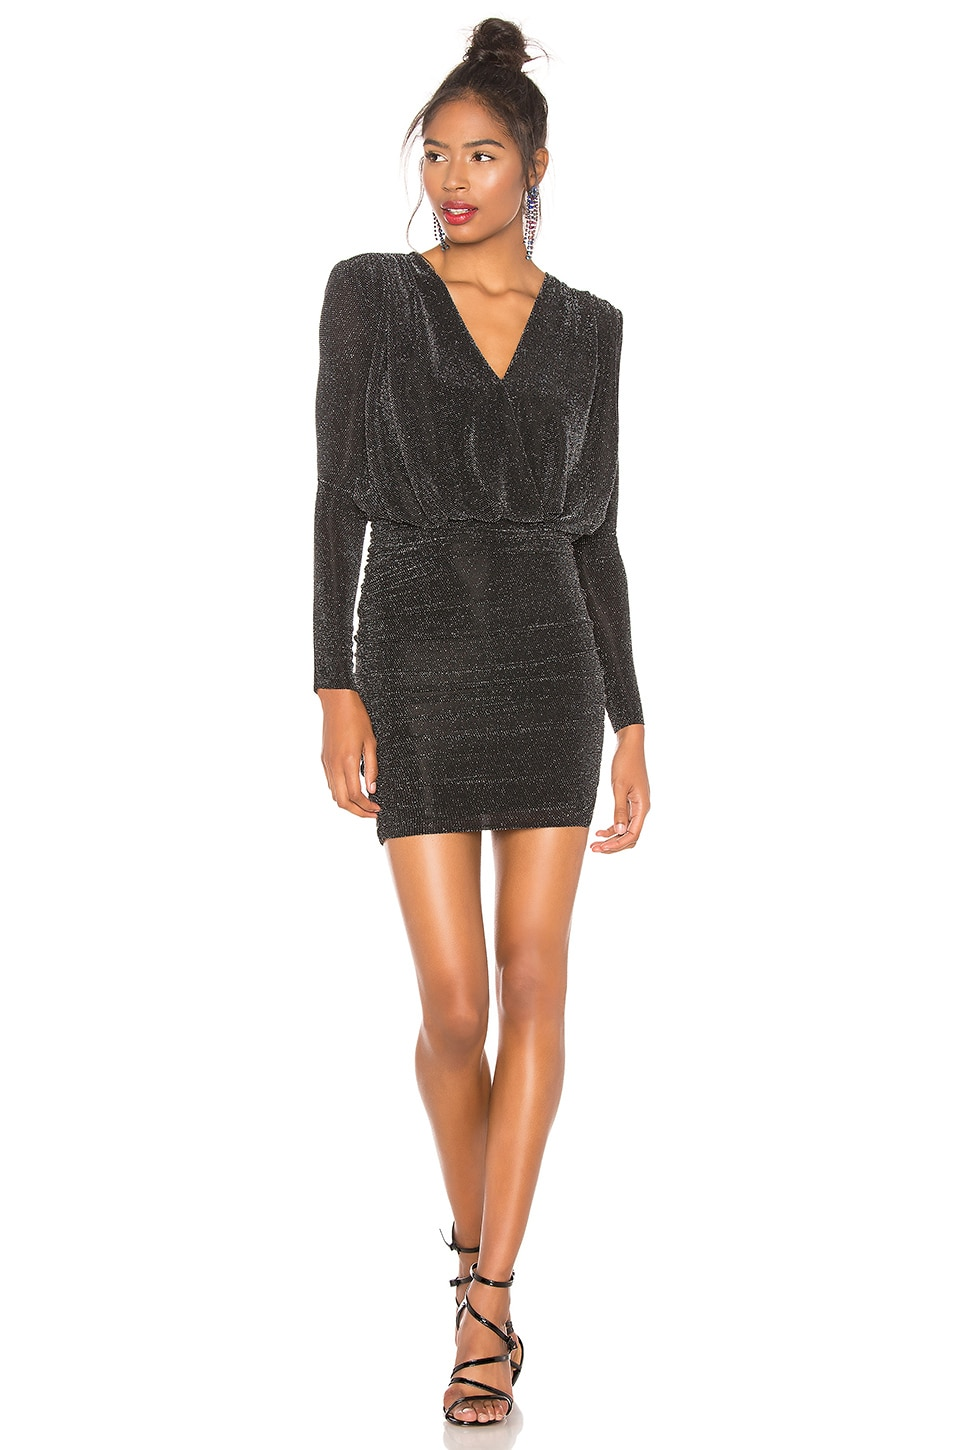 Bailey 44 Night Fever Sparkle Dress in Black